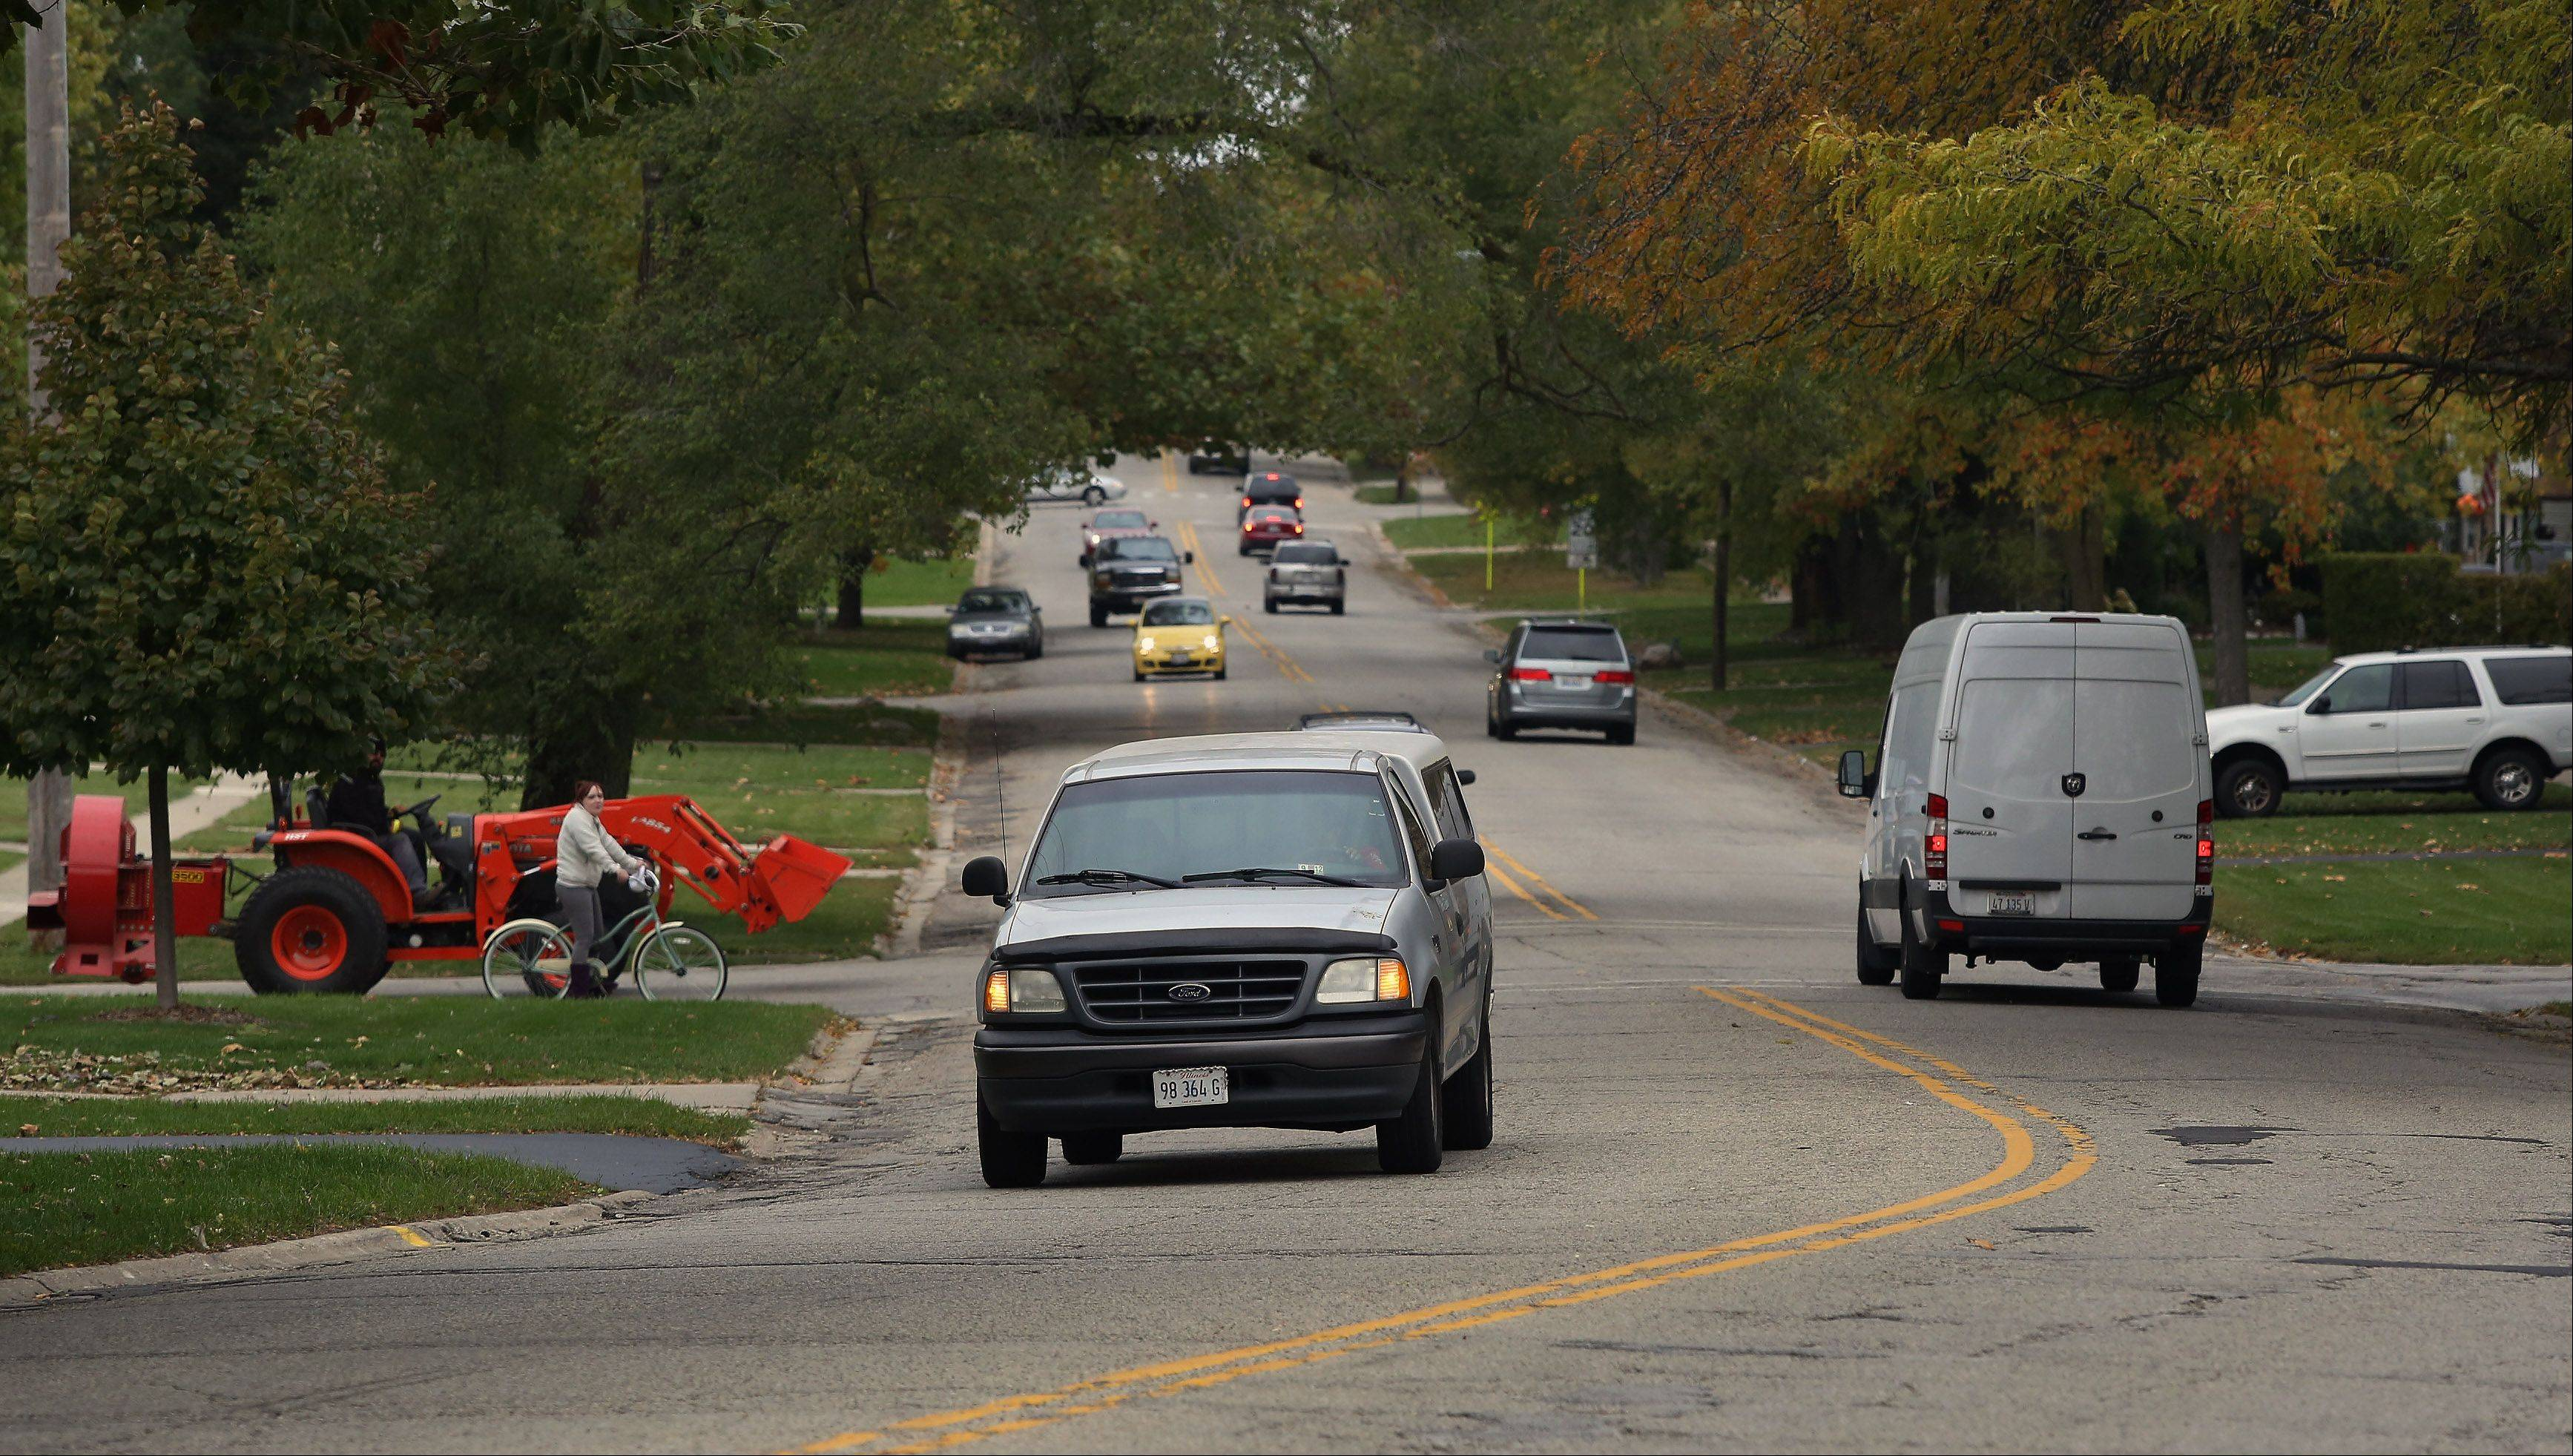 Public hearing planned for Mundelein road project